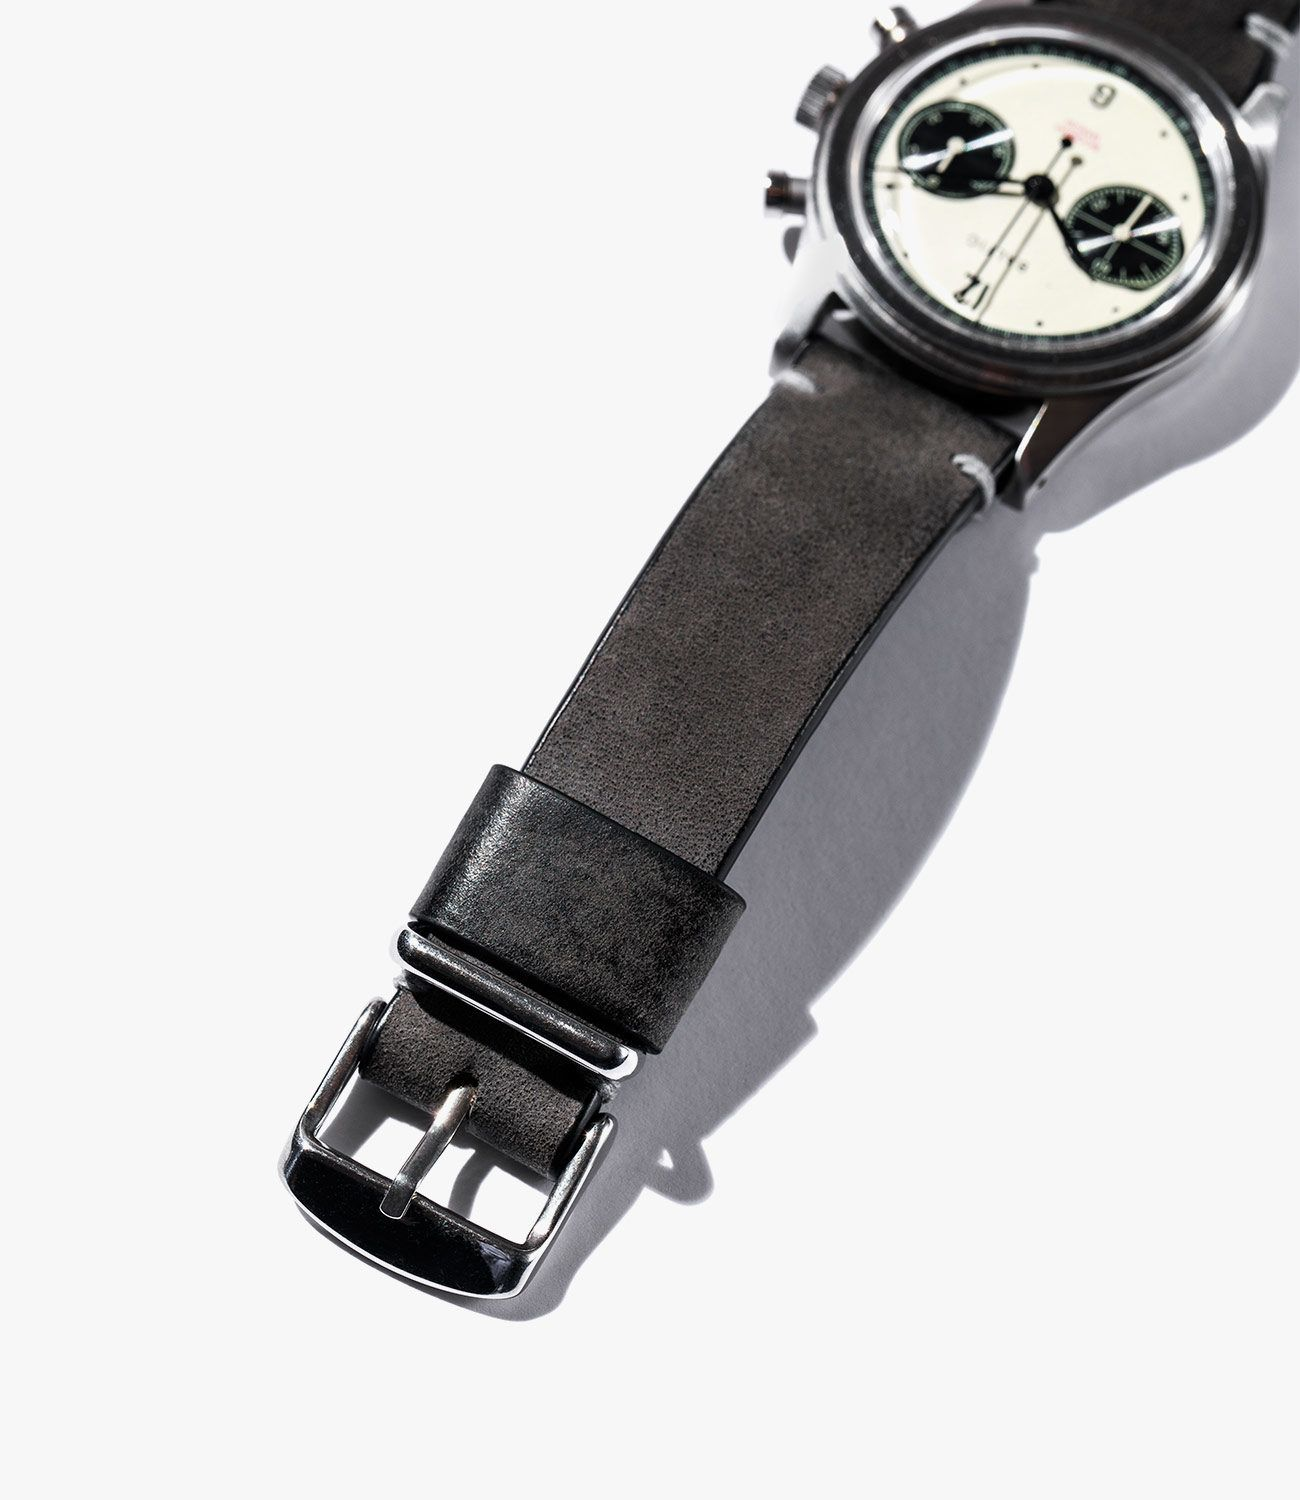 Leather-Watch-Bands-gear-patrol-Worn-and-Wound-Model-2-slide-2